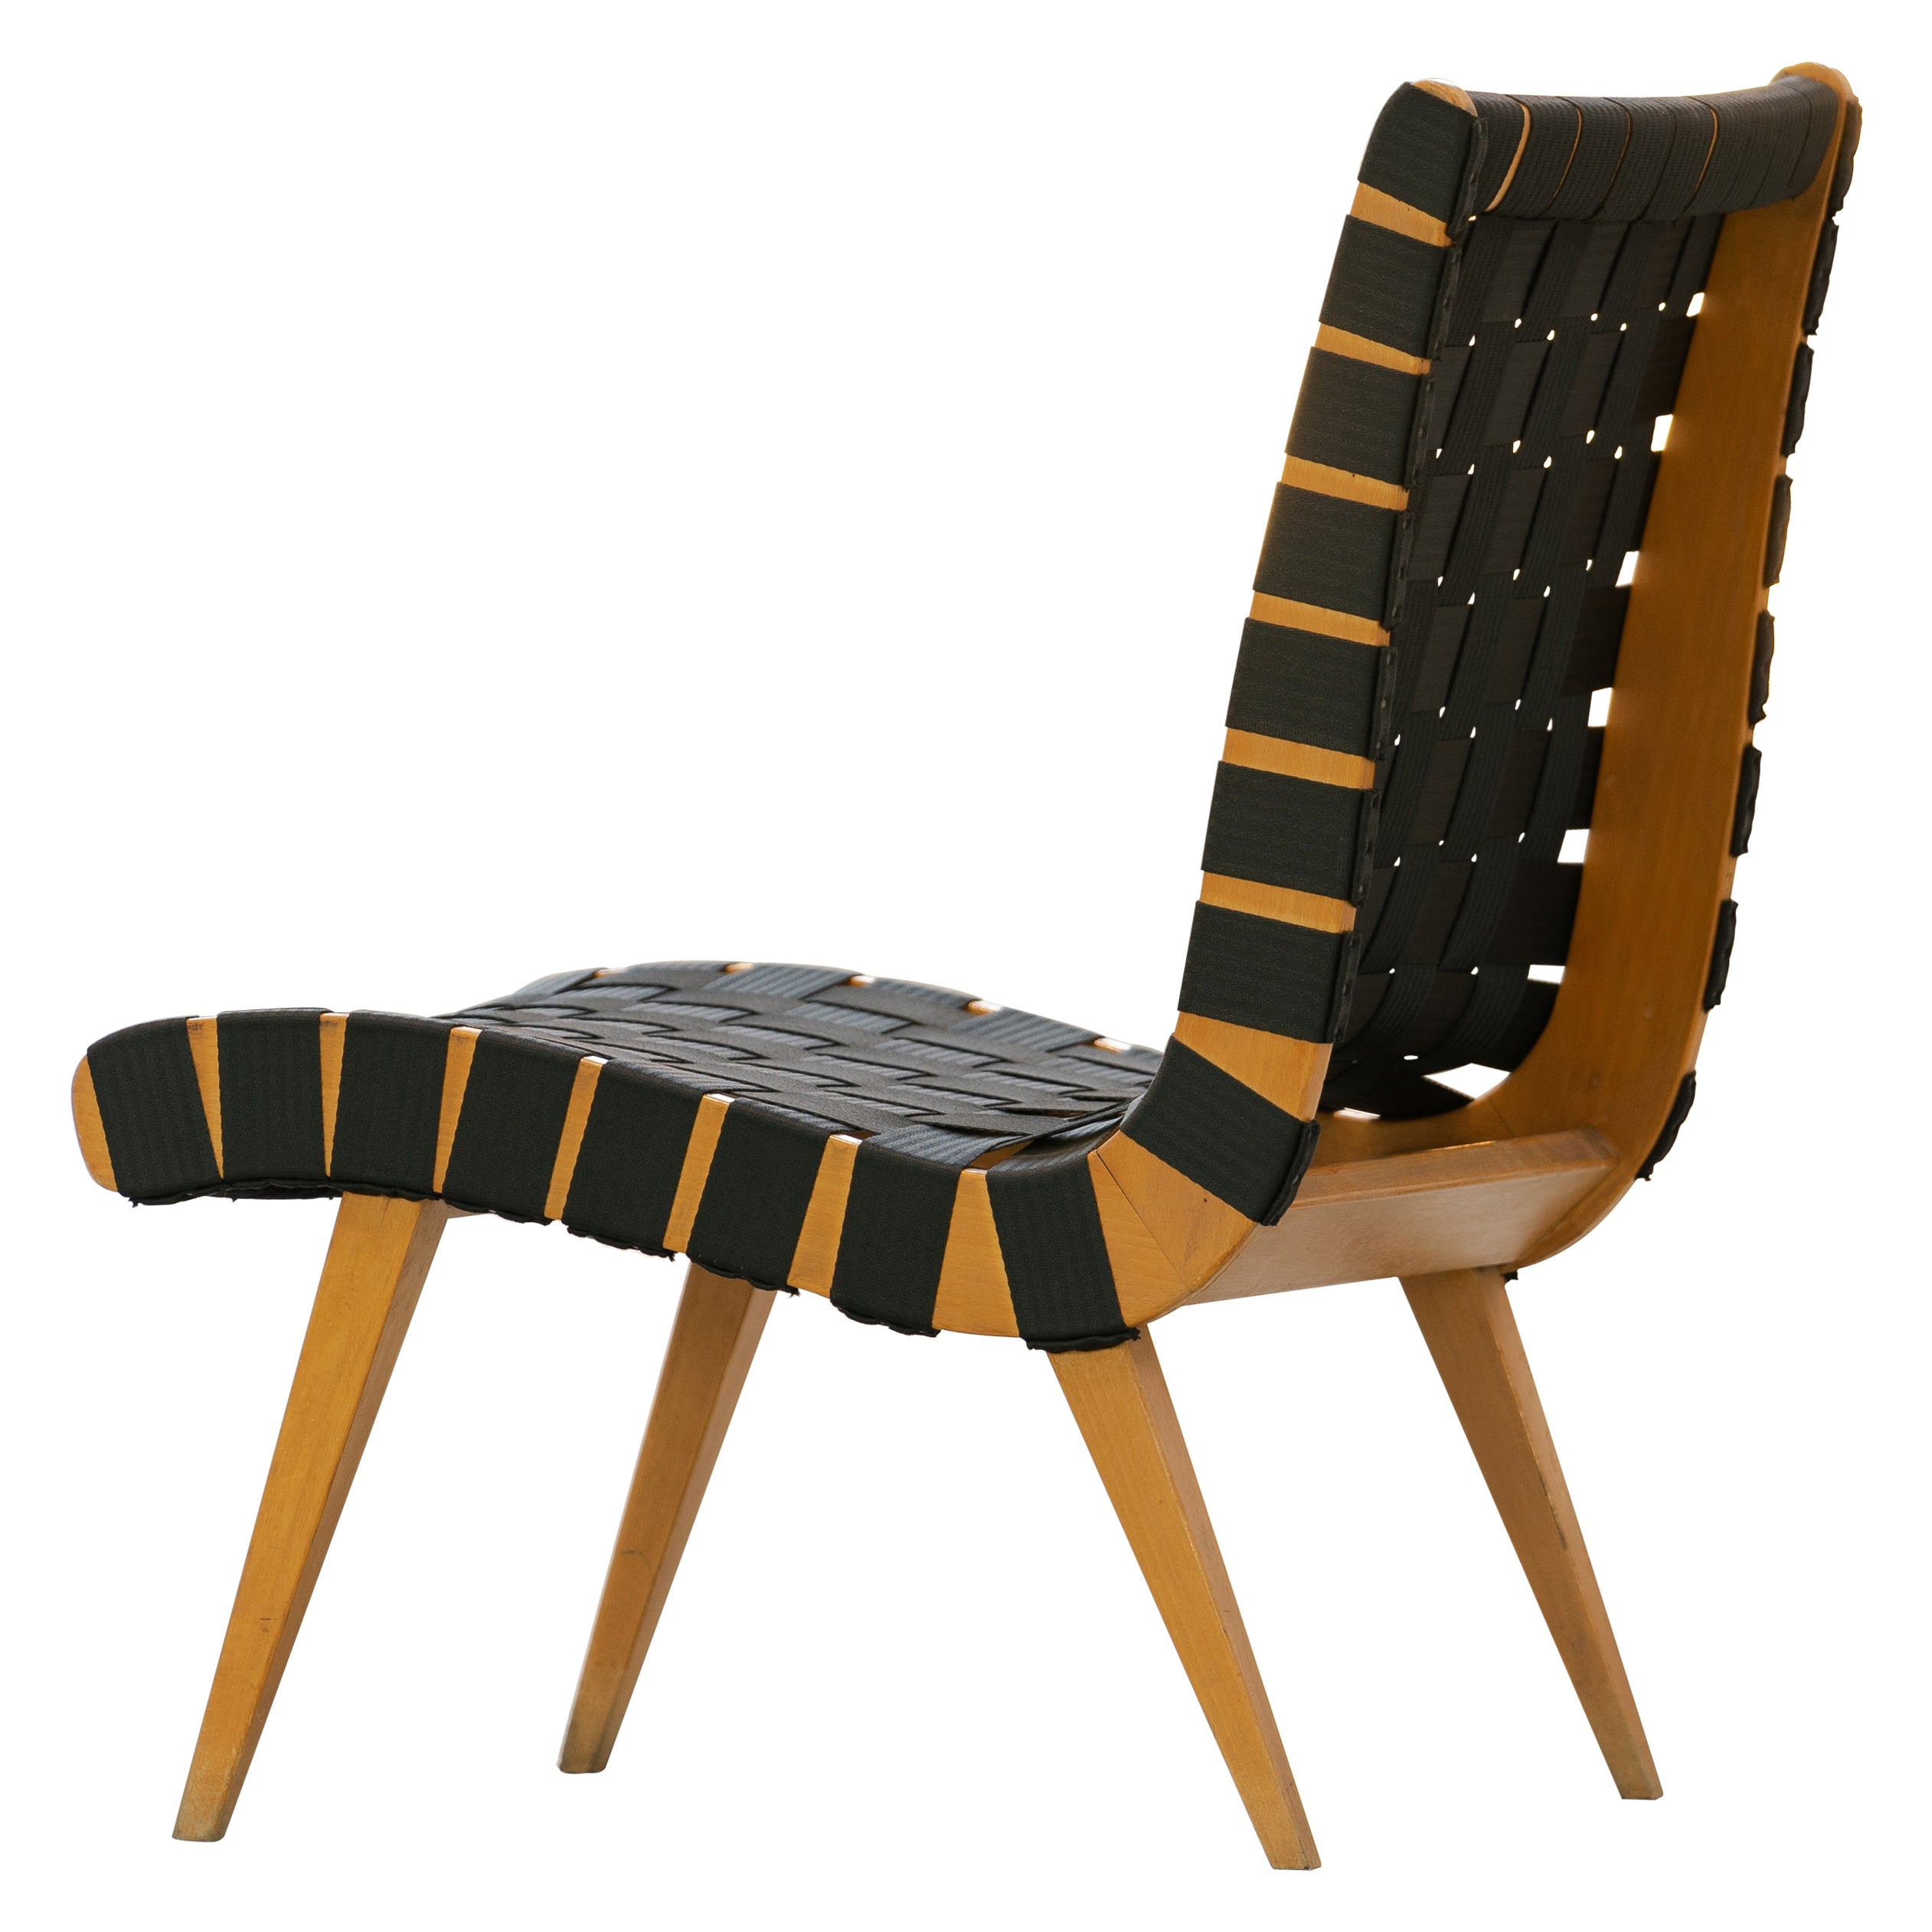 Jens Risom, Vostra Easy Lounge Chair, Design 1941 for Walter Knoll, Germany